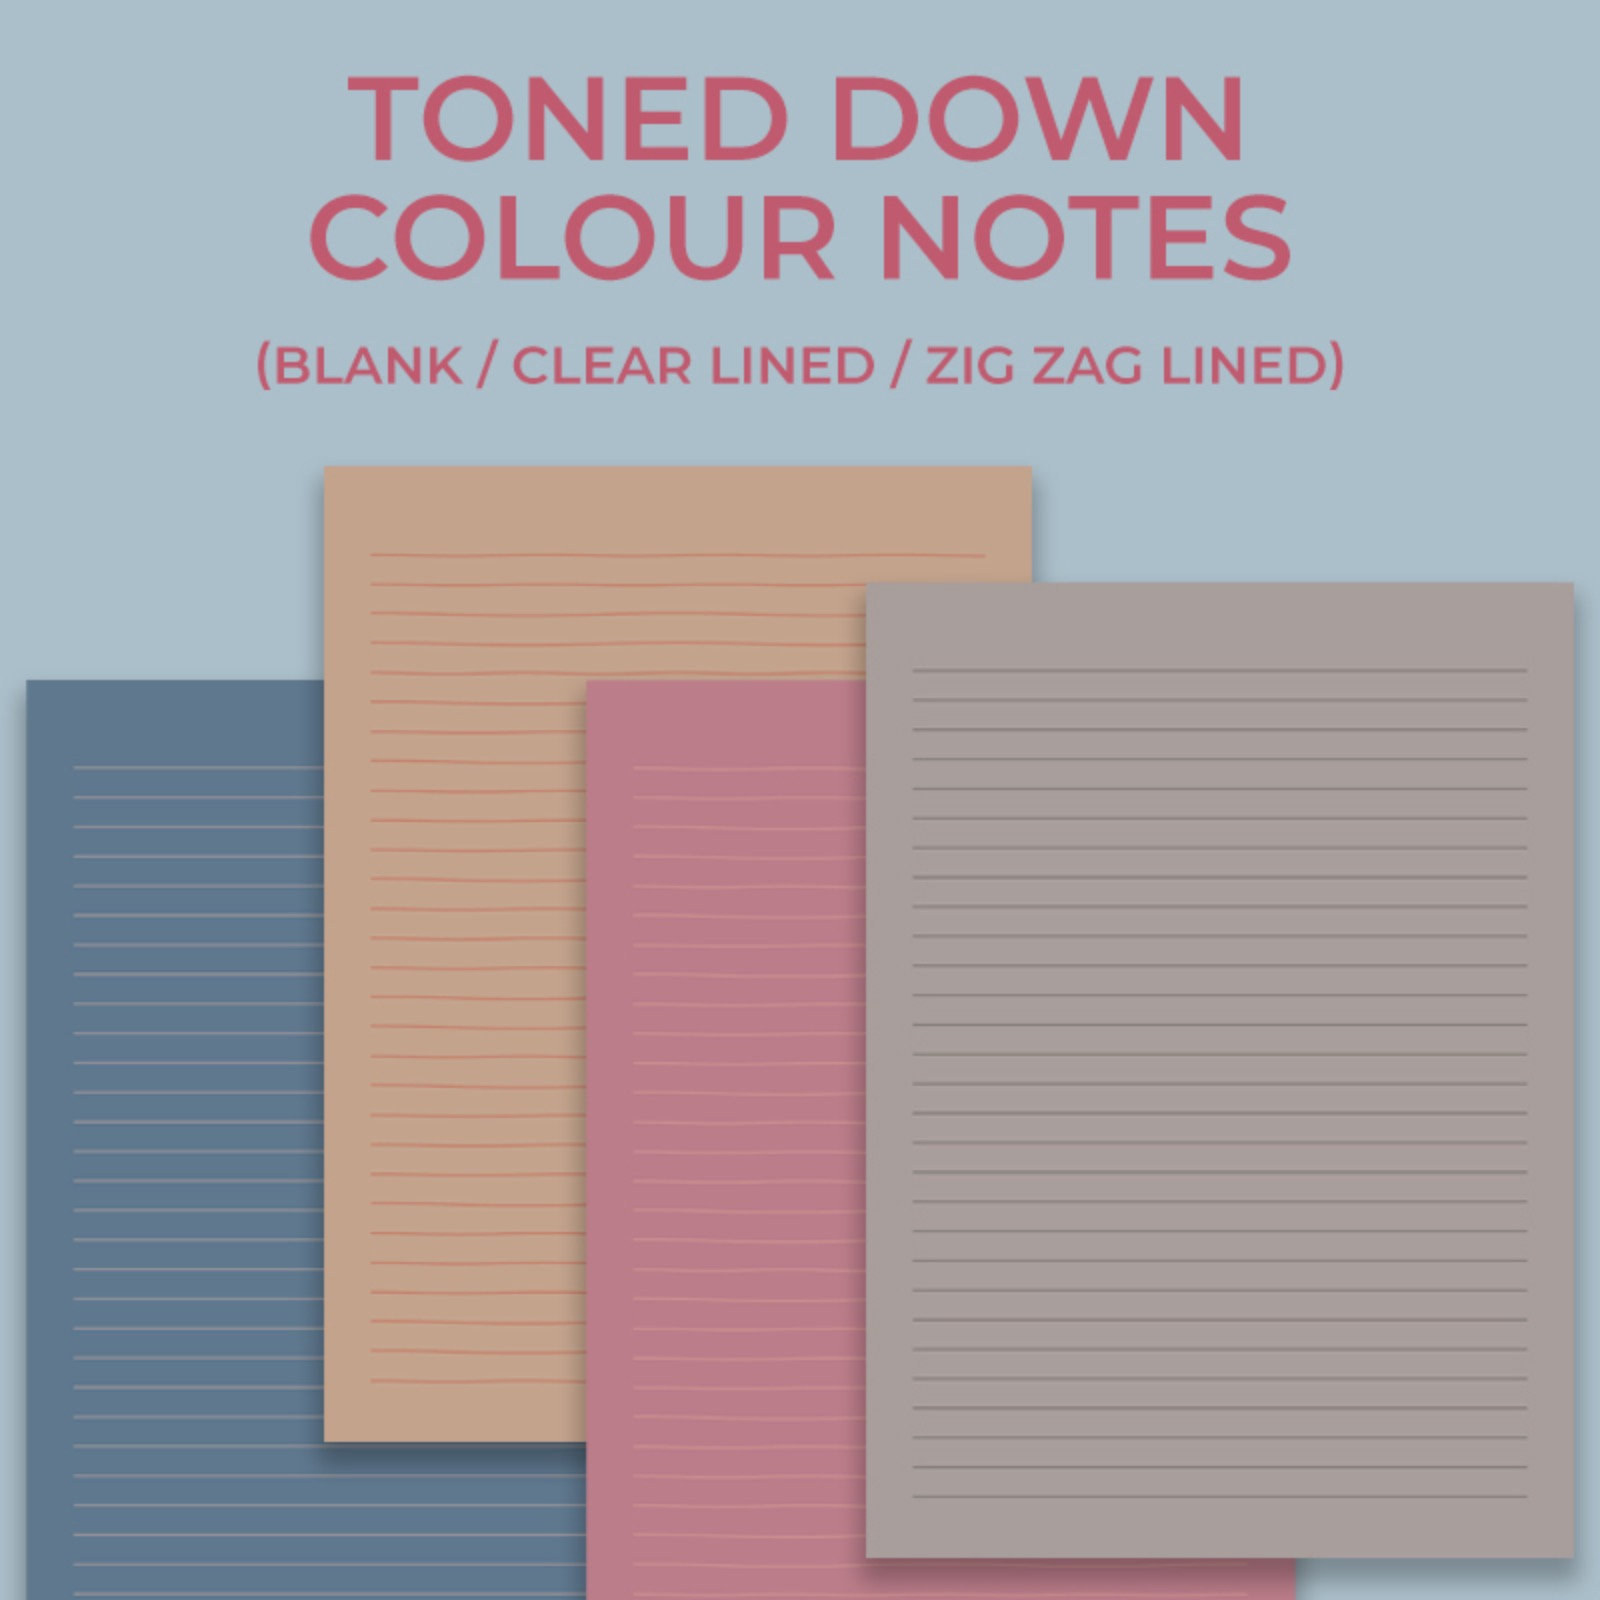 Toned down colour notes